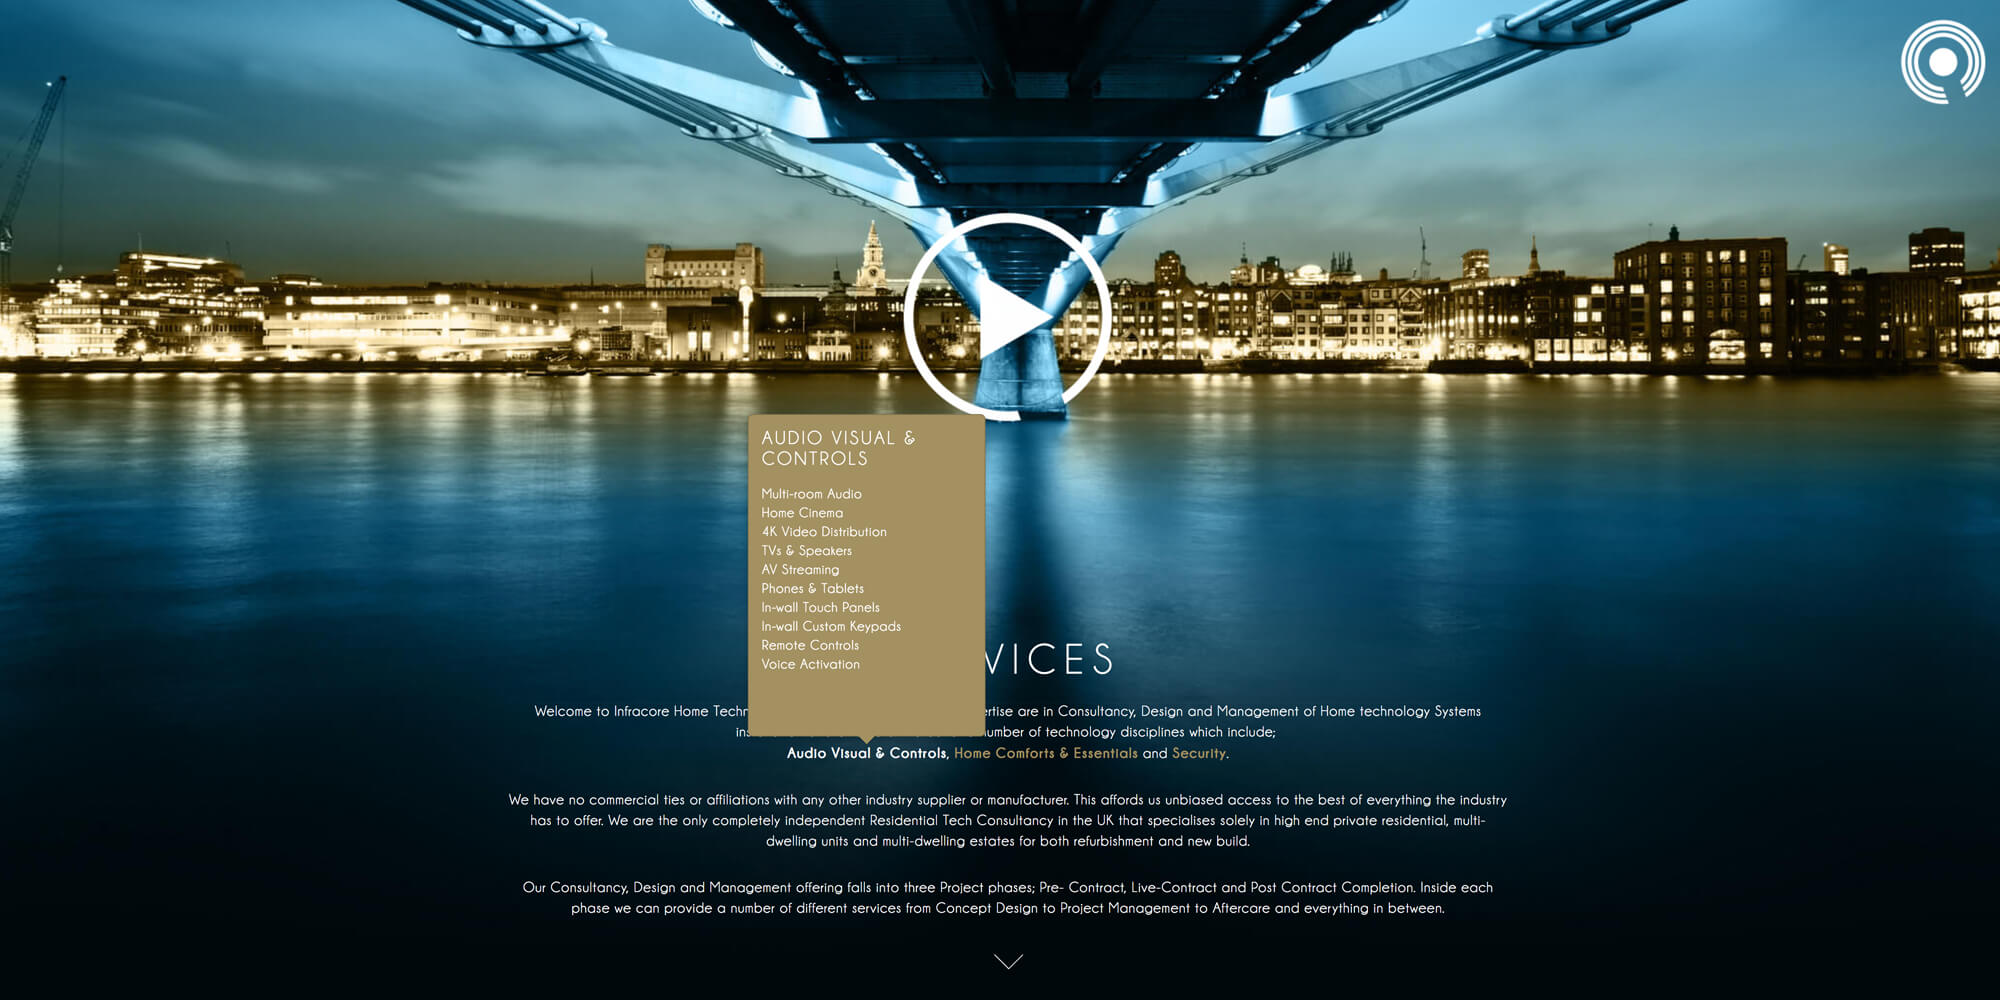 infracore HTC website design london